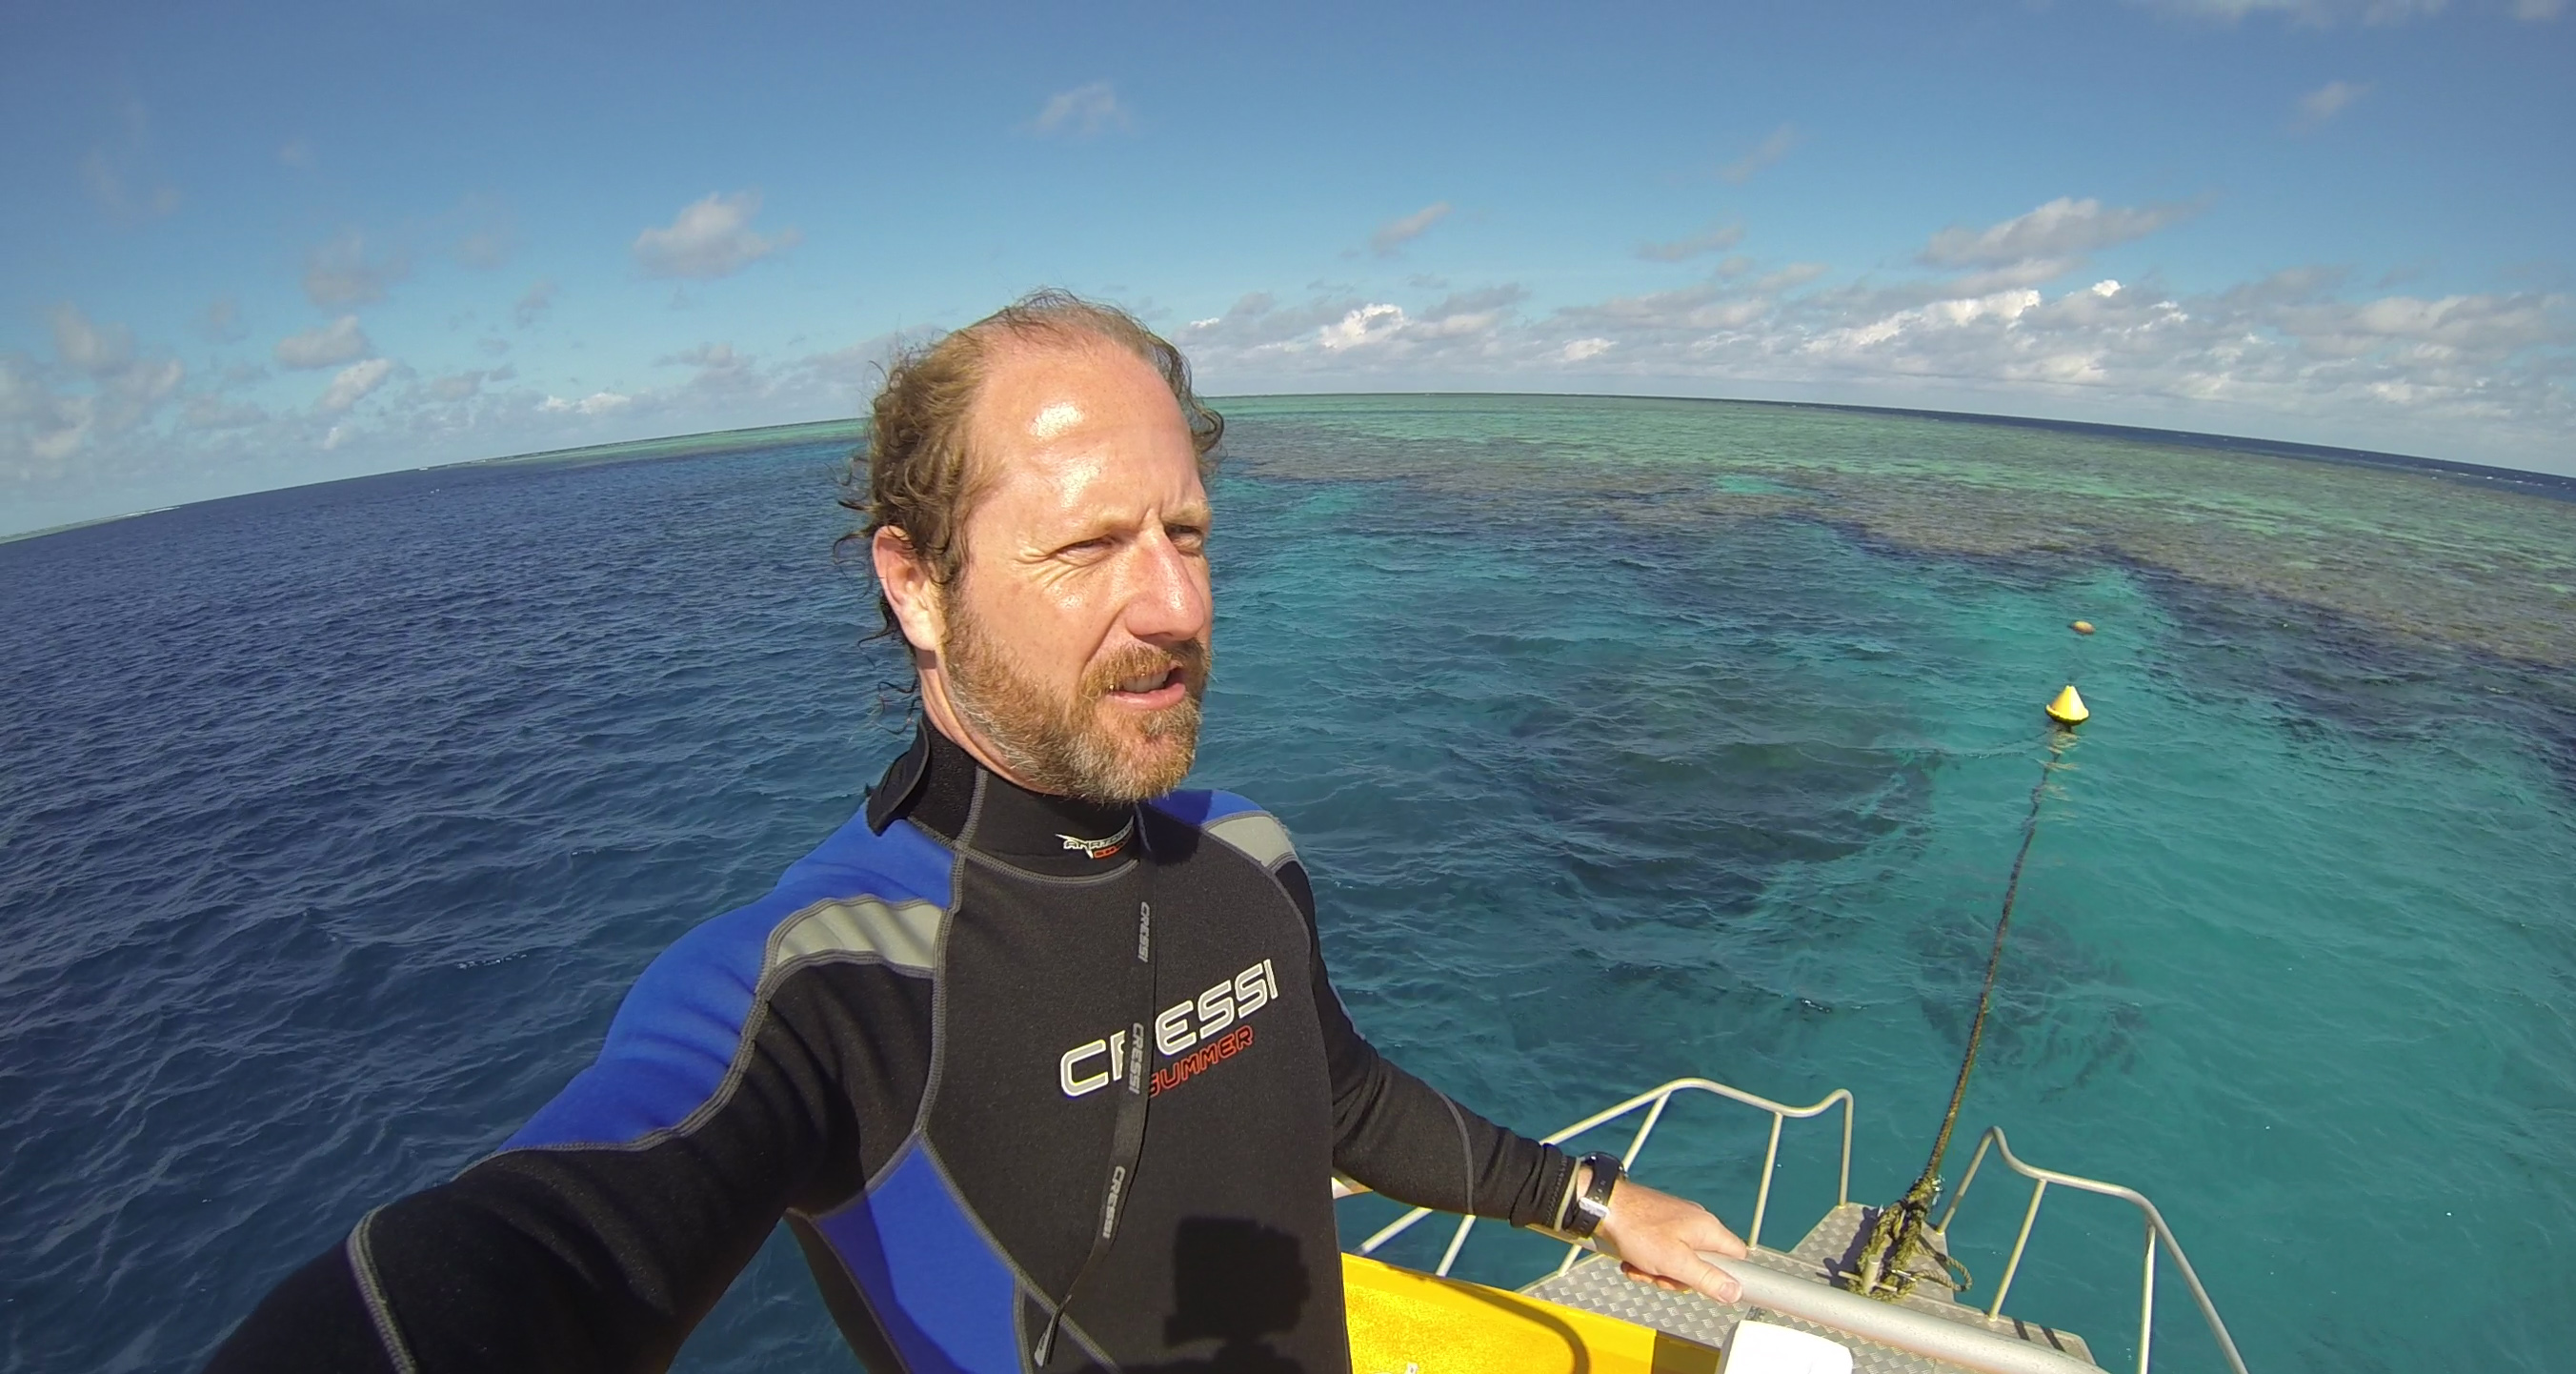 Dr Shelby Temple on the Great Barrier Reef